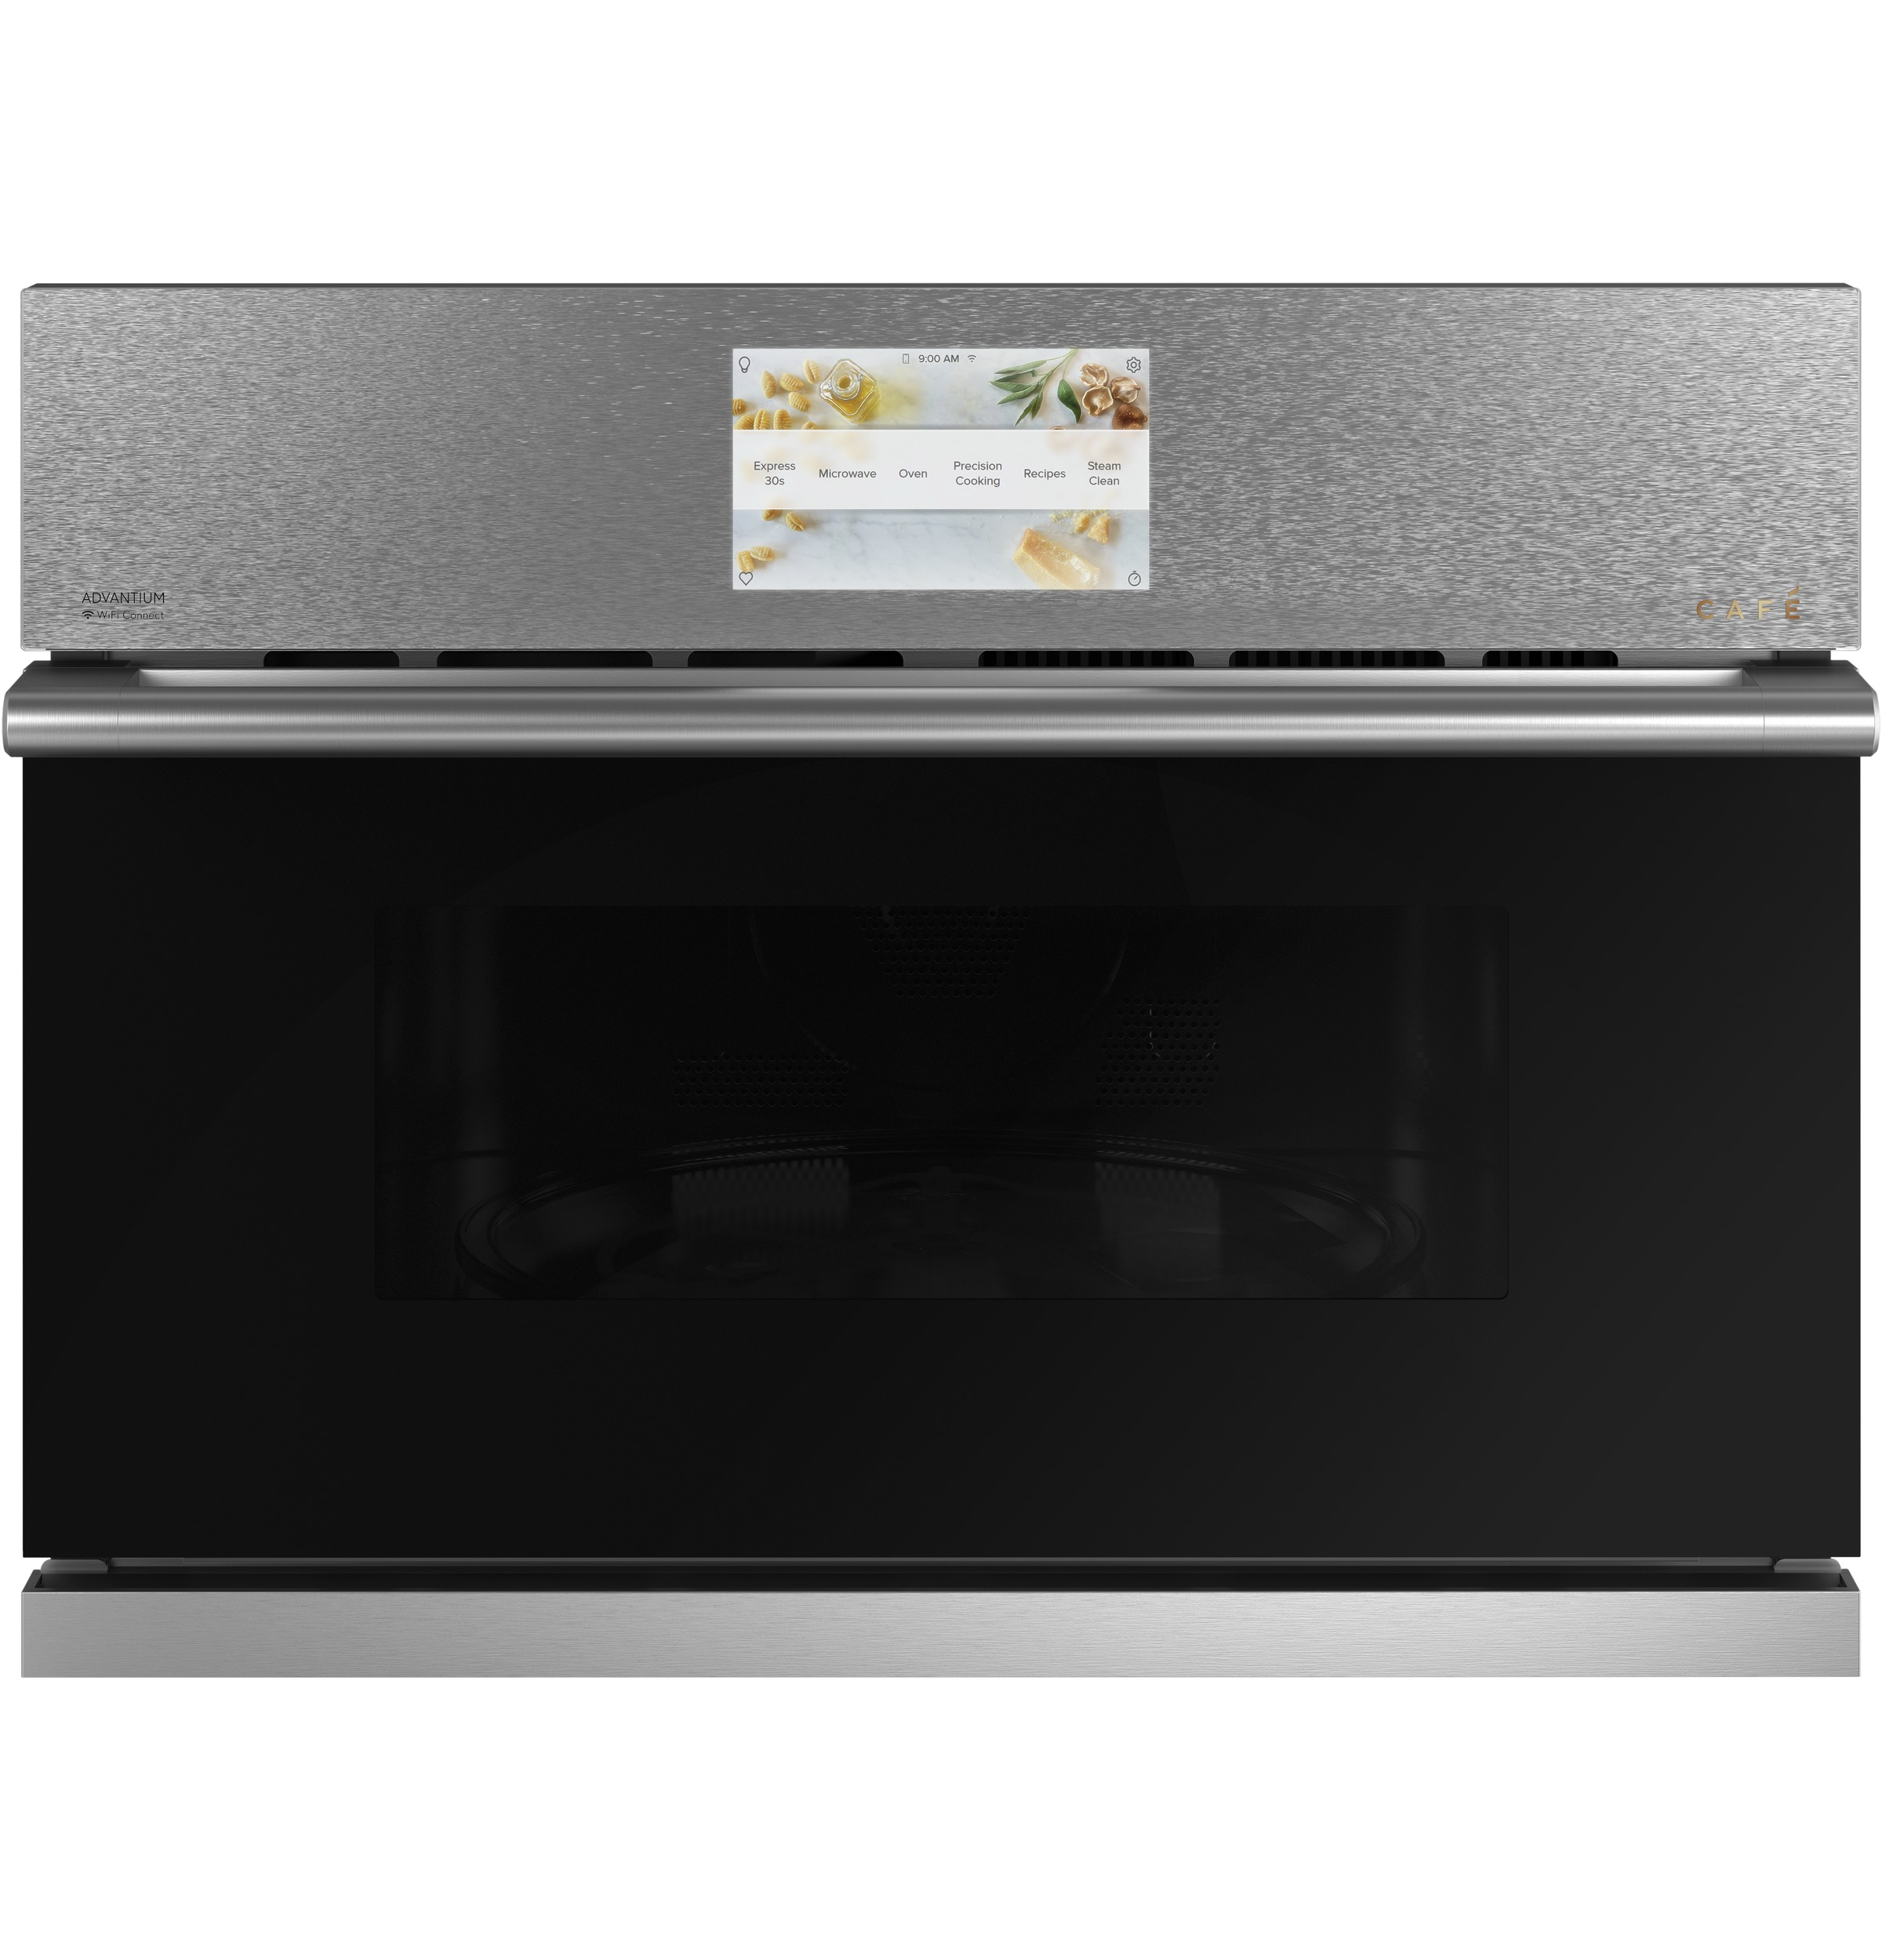 "Cafe Cafe™ 27"" Smart Five in One Oven with 120V Advantium® Technology in Platinum Glass"